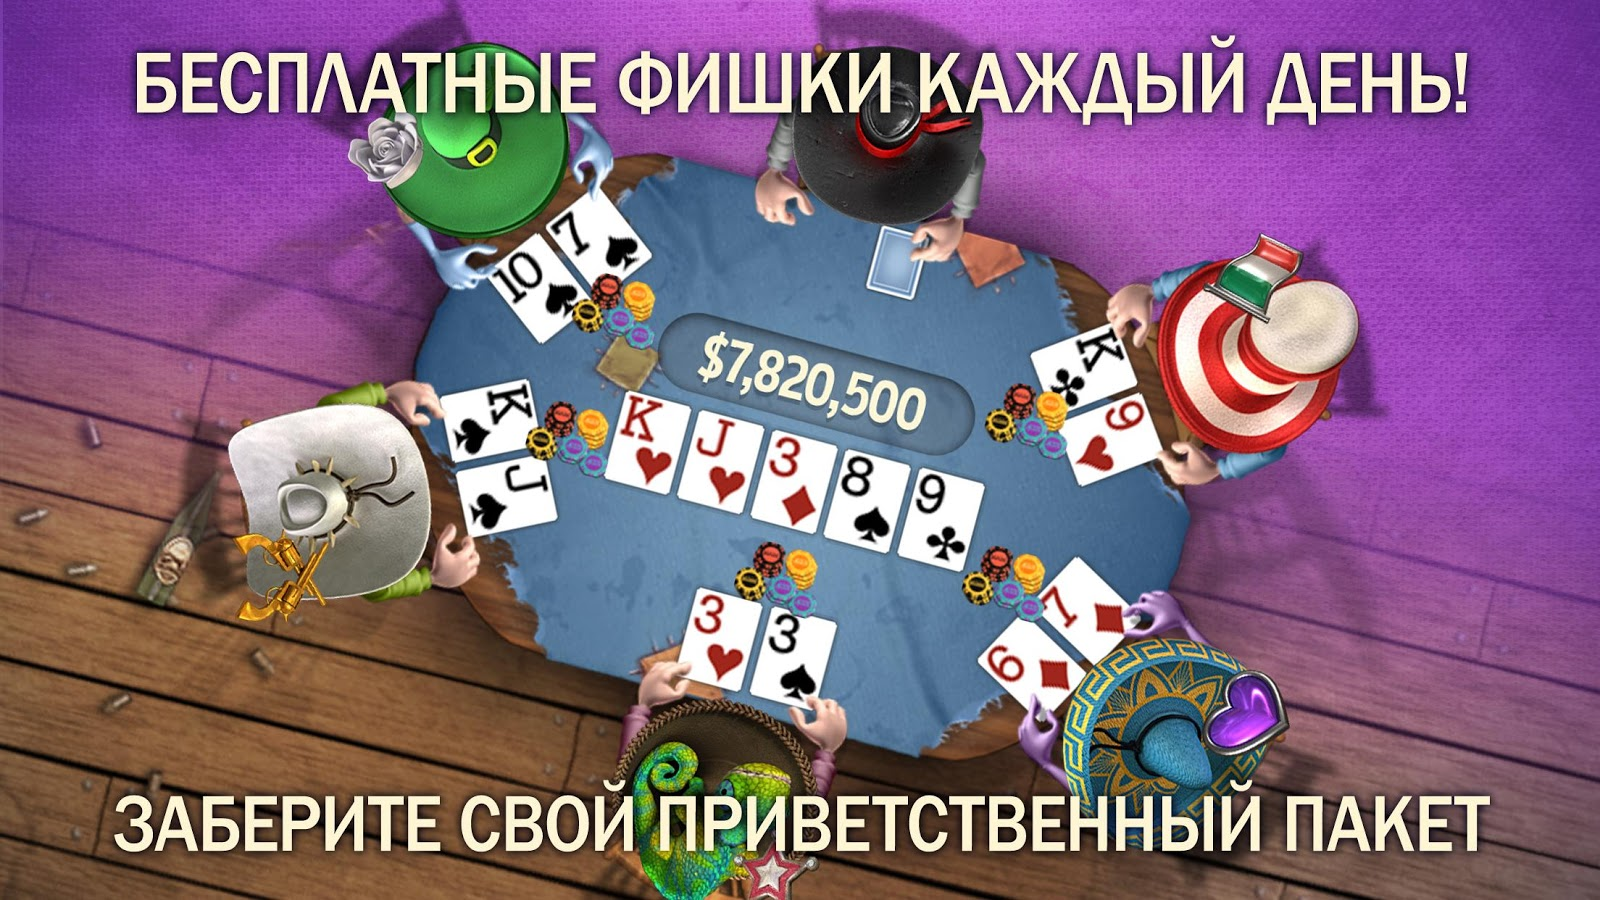 Play governor of poker 2 for free online